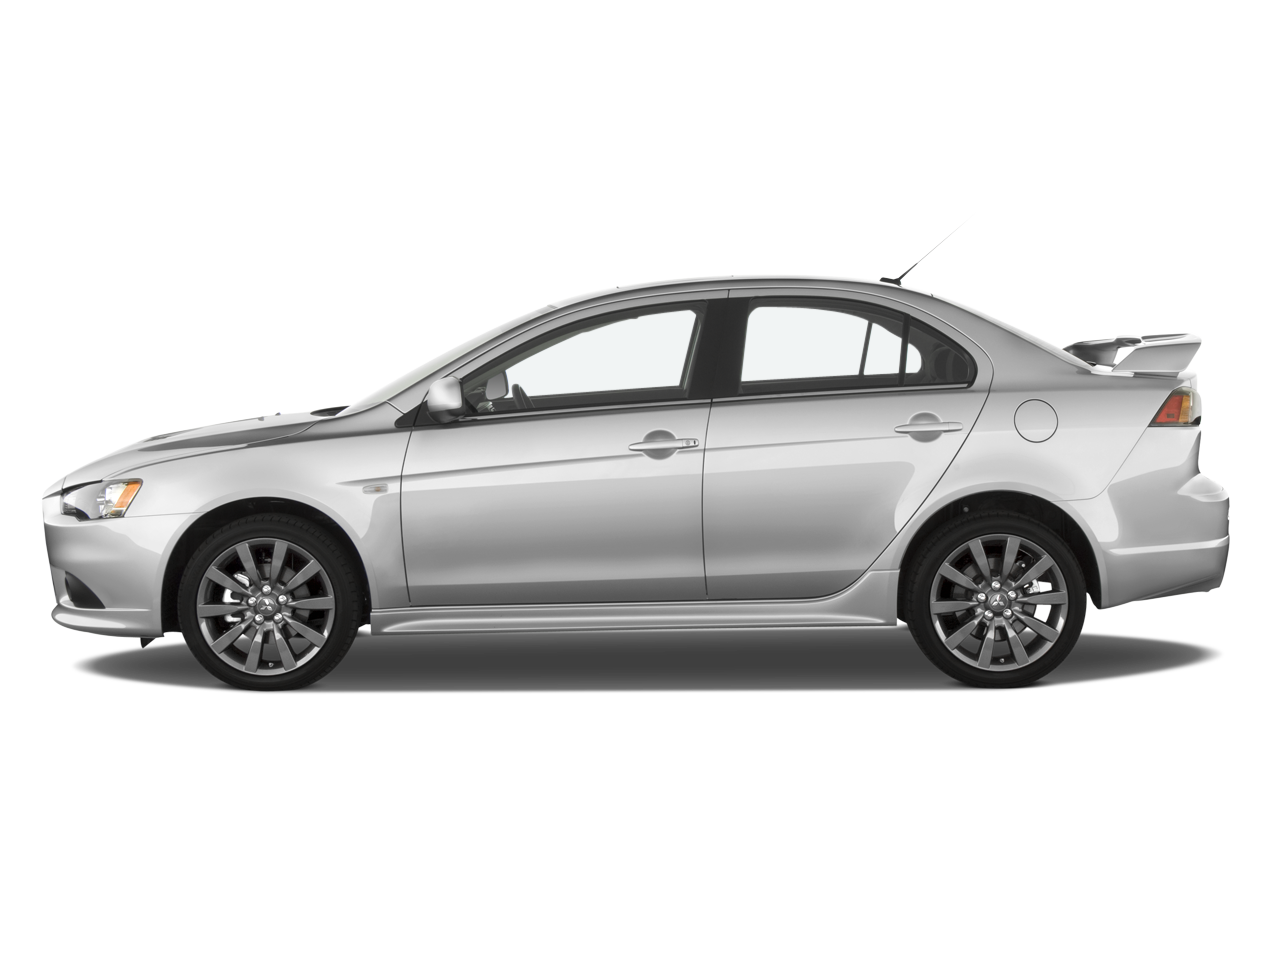 2009 Mitsubishi Lancer Ralliart Latest News Features And Reviews Automobile Magazine